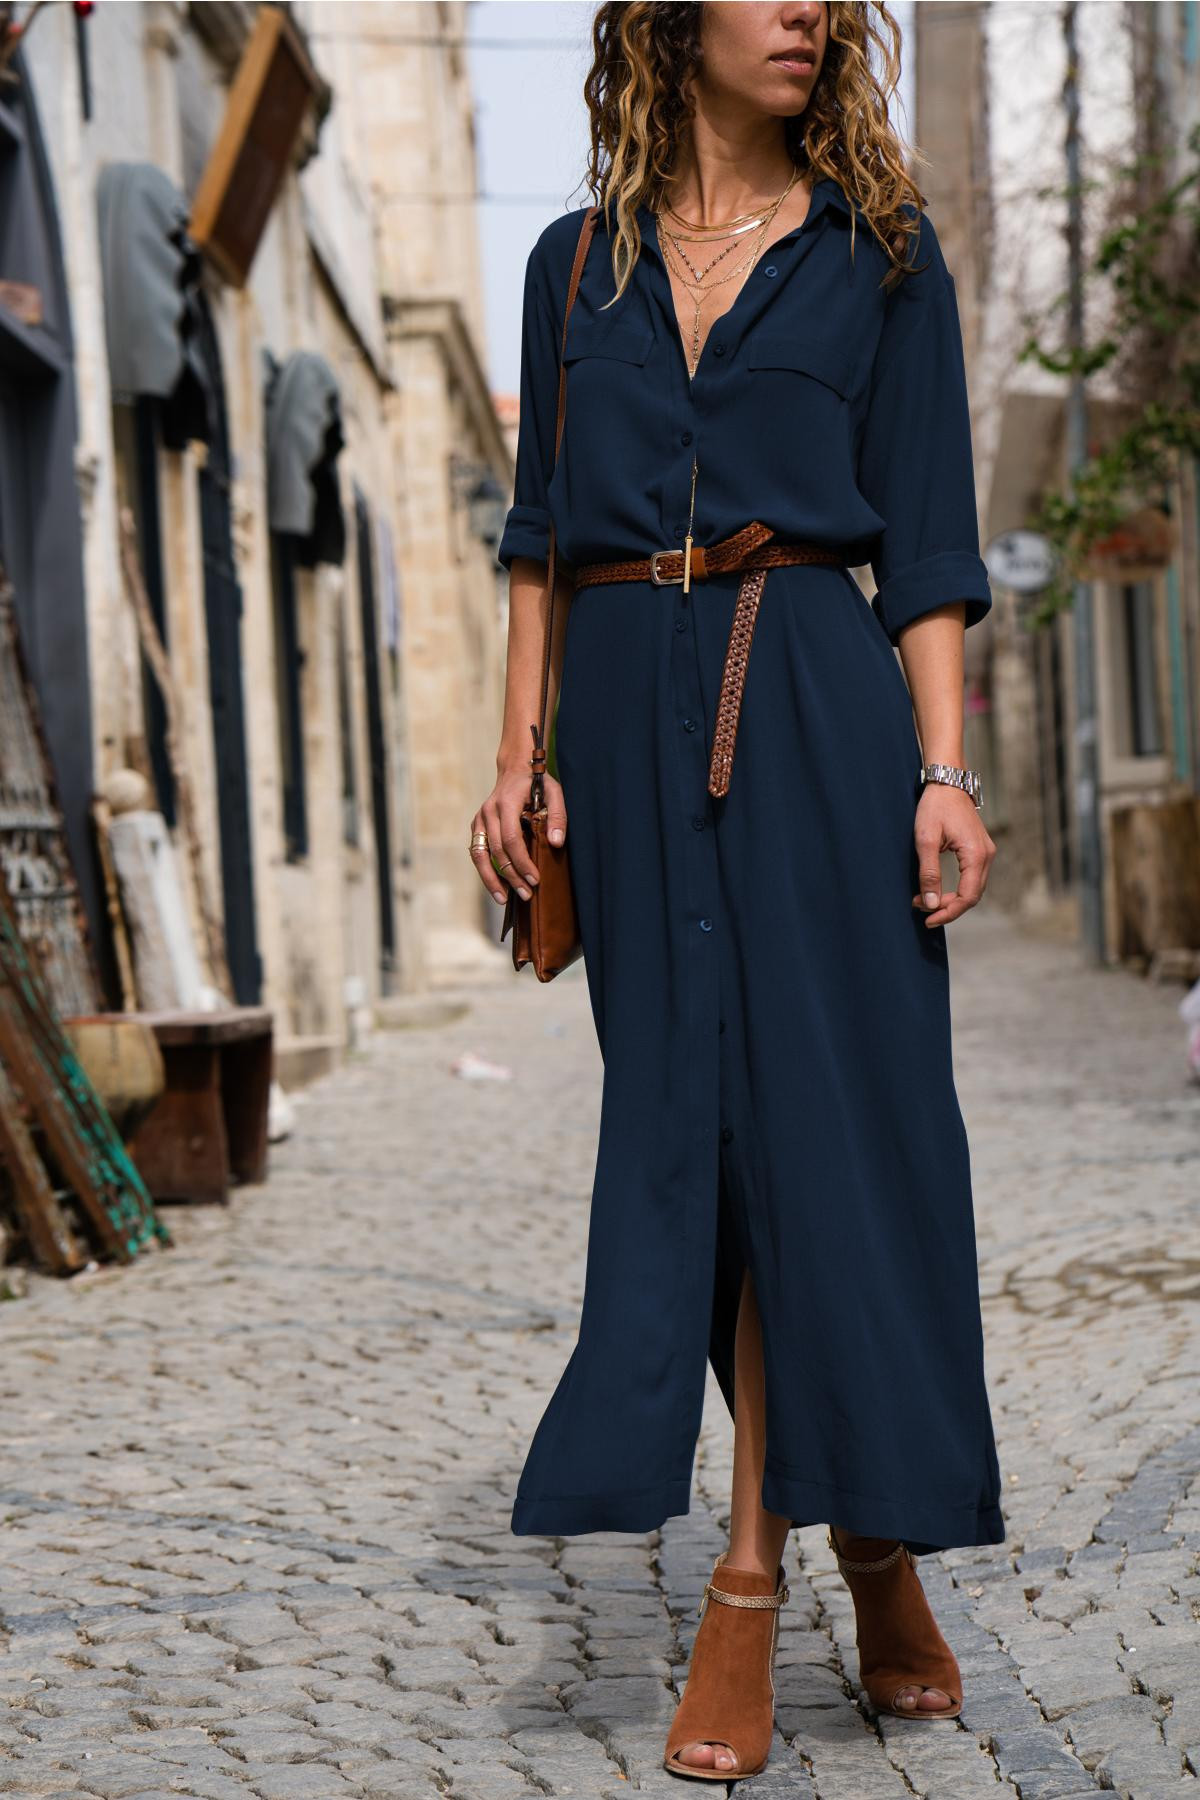 Women Loose Long Shirt Dress Fashion Women Single Breasted Dress Ladies Casual Solid Color Long Sleeve Maxi Dresses Plus Size in Dresses from Women 39 s Clothing